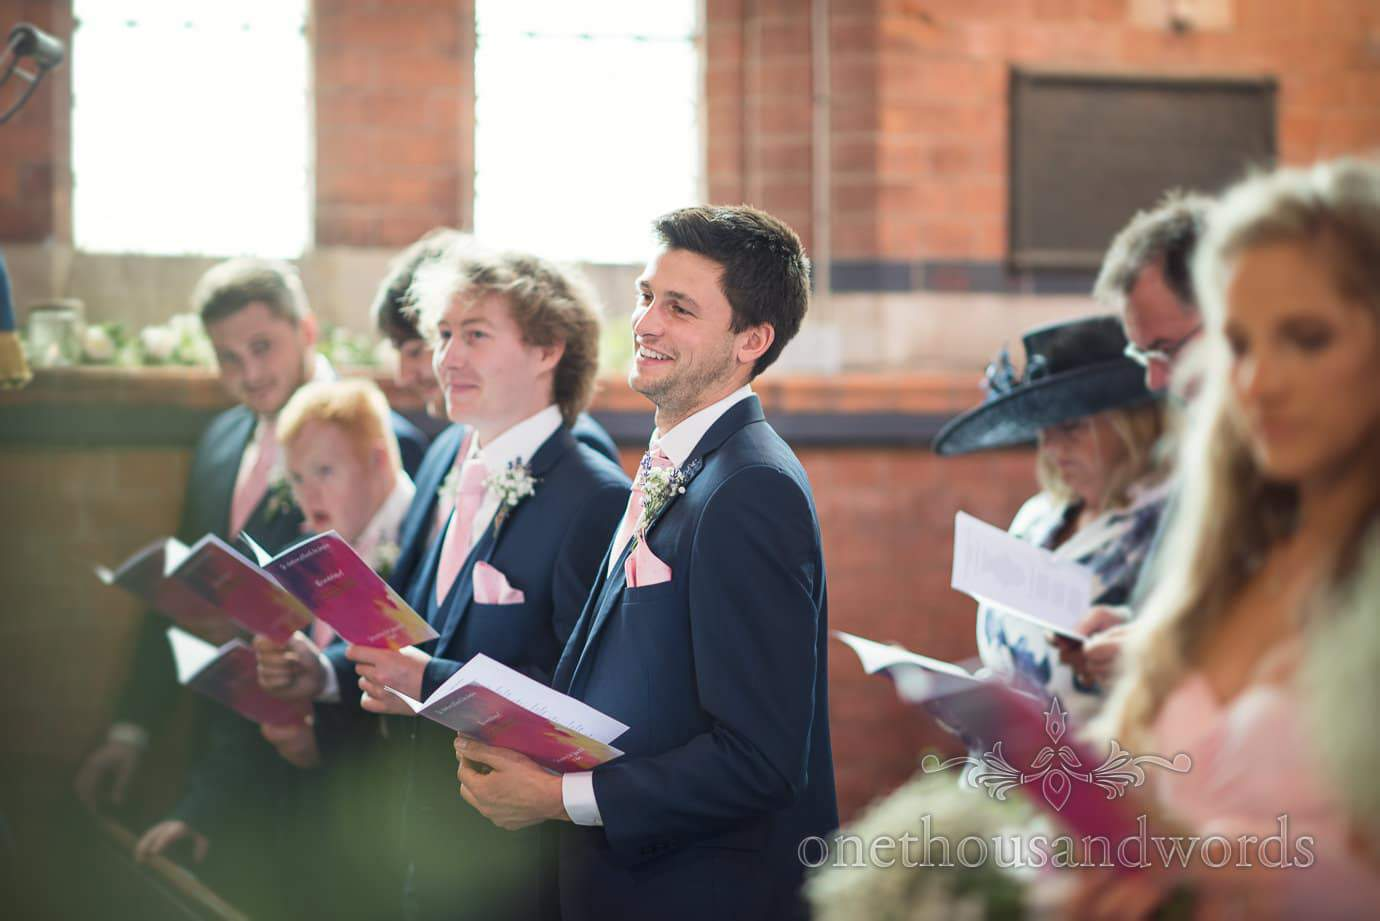 Groomsmen reading from pink multicolour order of service at church wedding